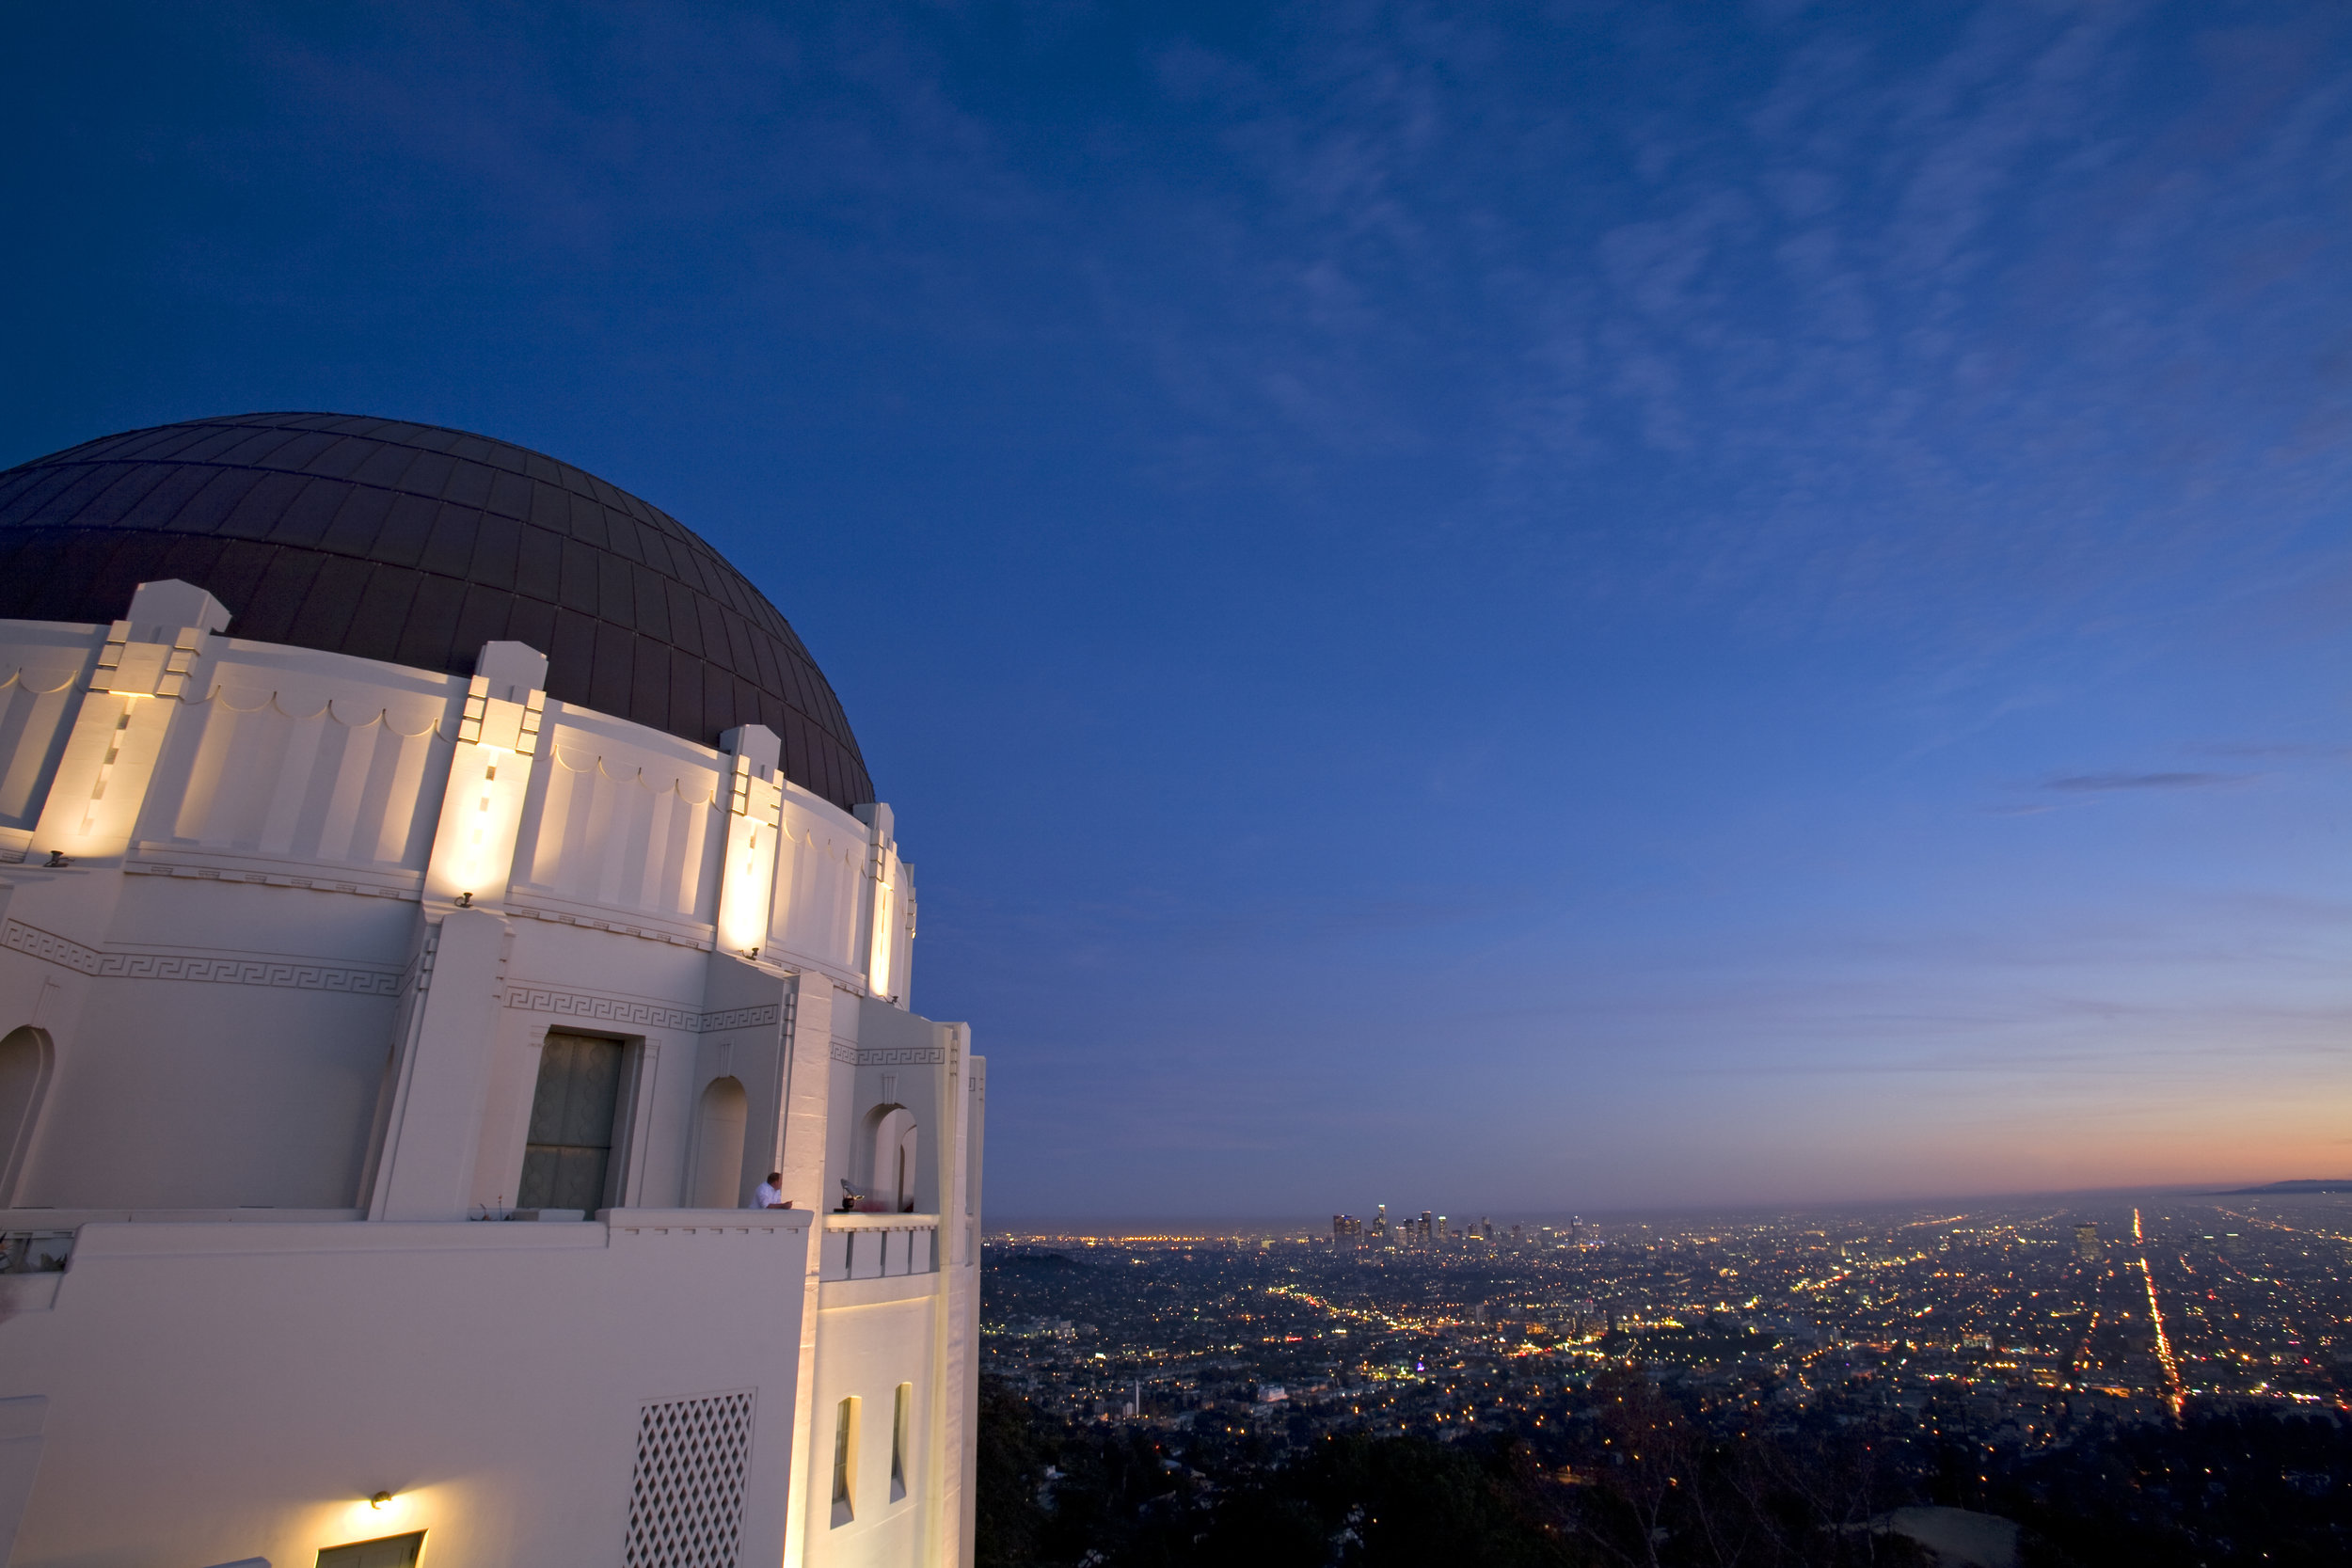 Griffith Observatory and Los Angeles Skyline, California, USA